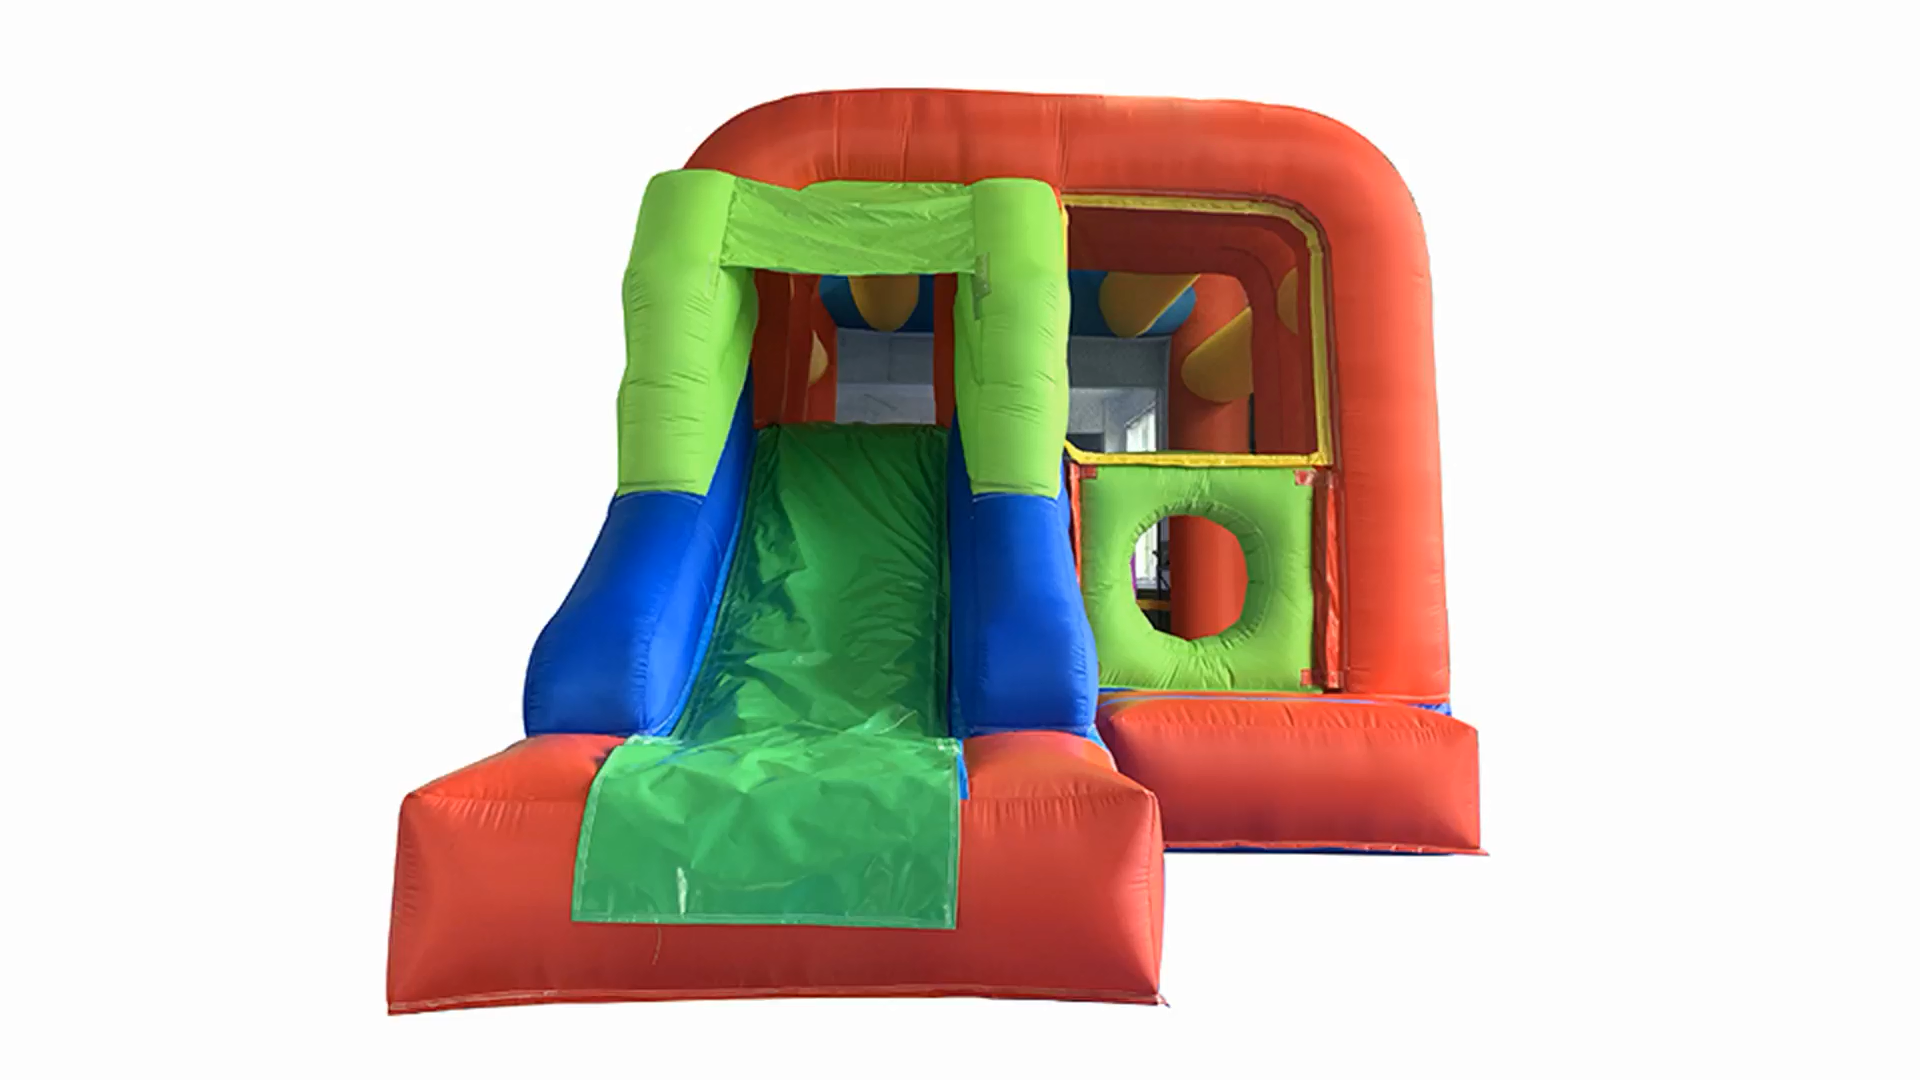 Hot selling popular factory price premium quality Dinosaur inflatable Bounce House bouncer house for yard to play for sale